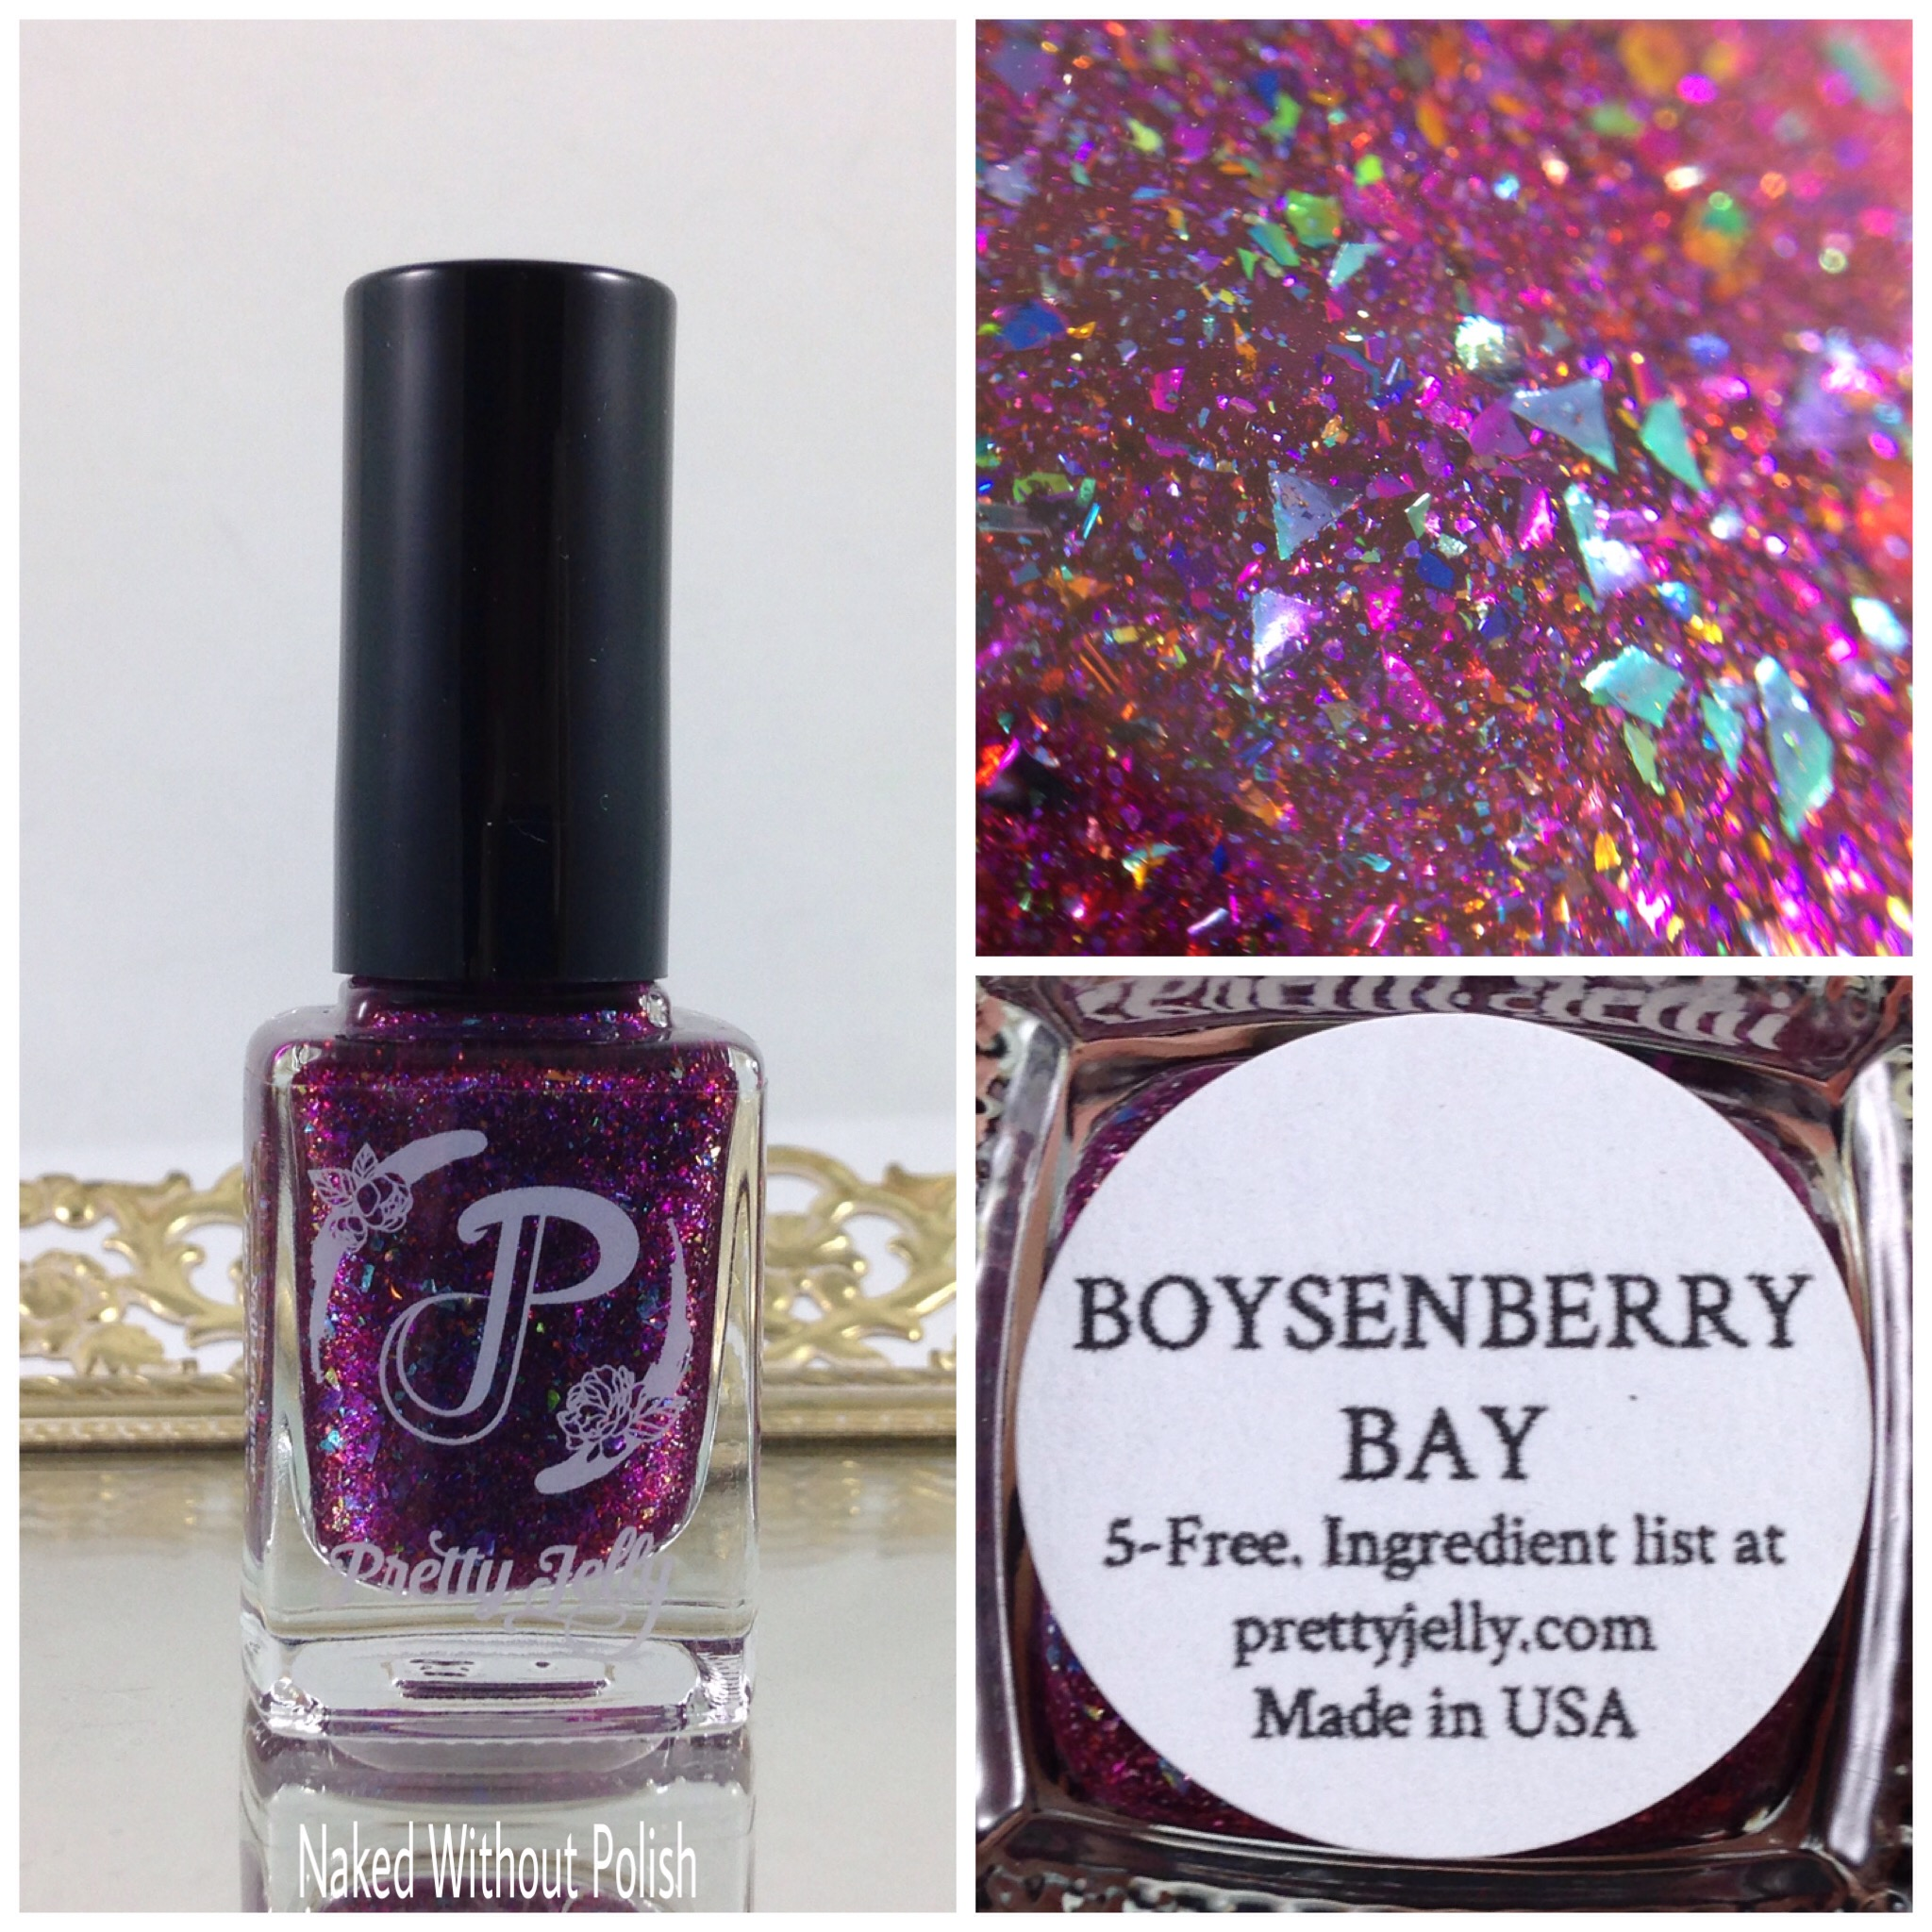 Pretty-Jelly-Boysenberry-Bay-1